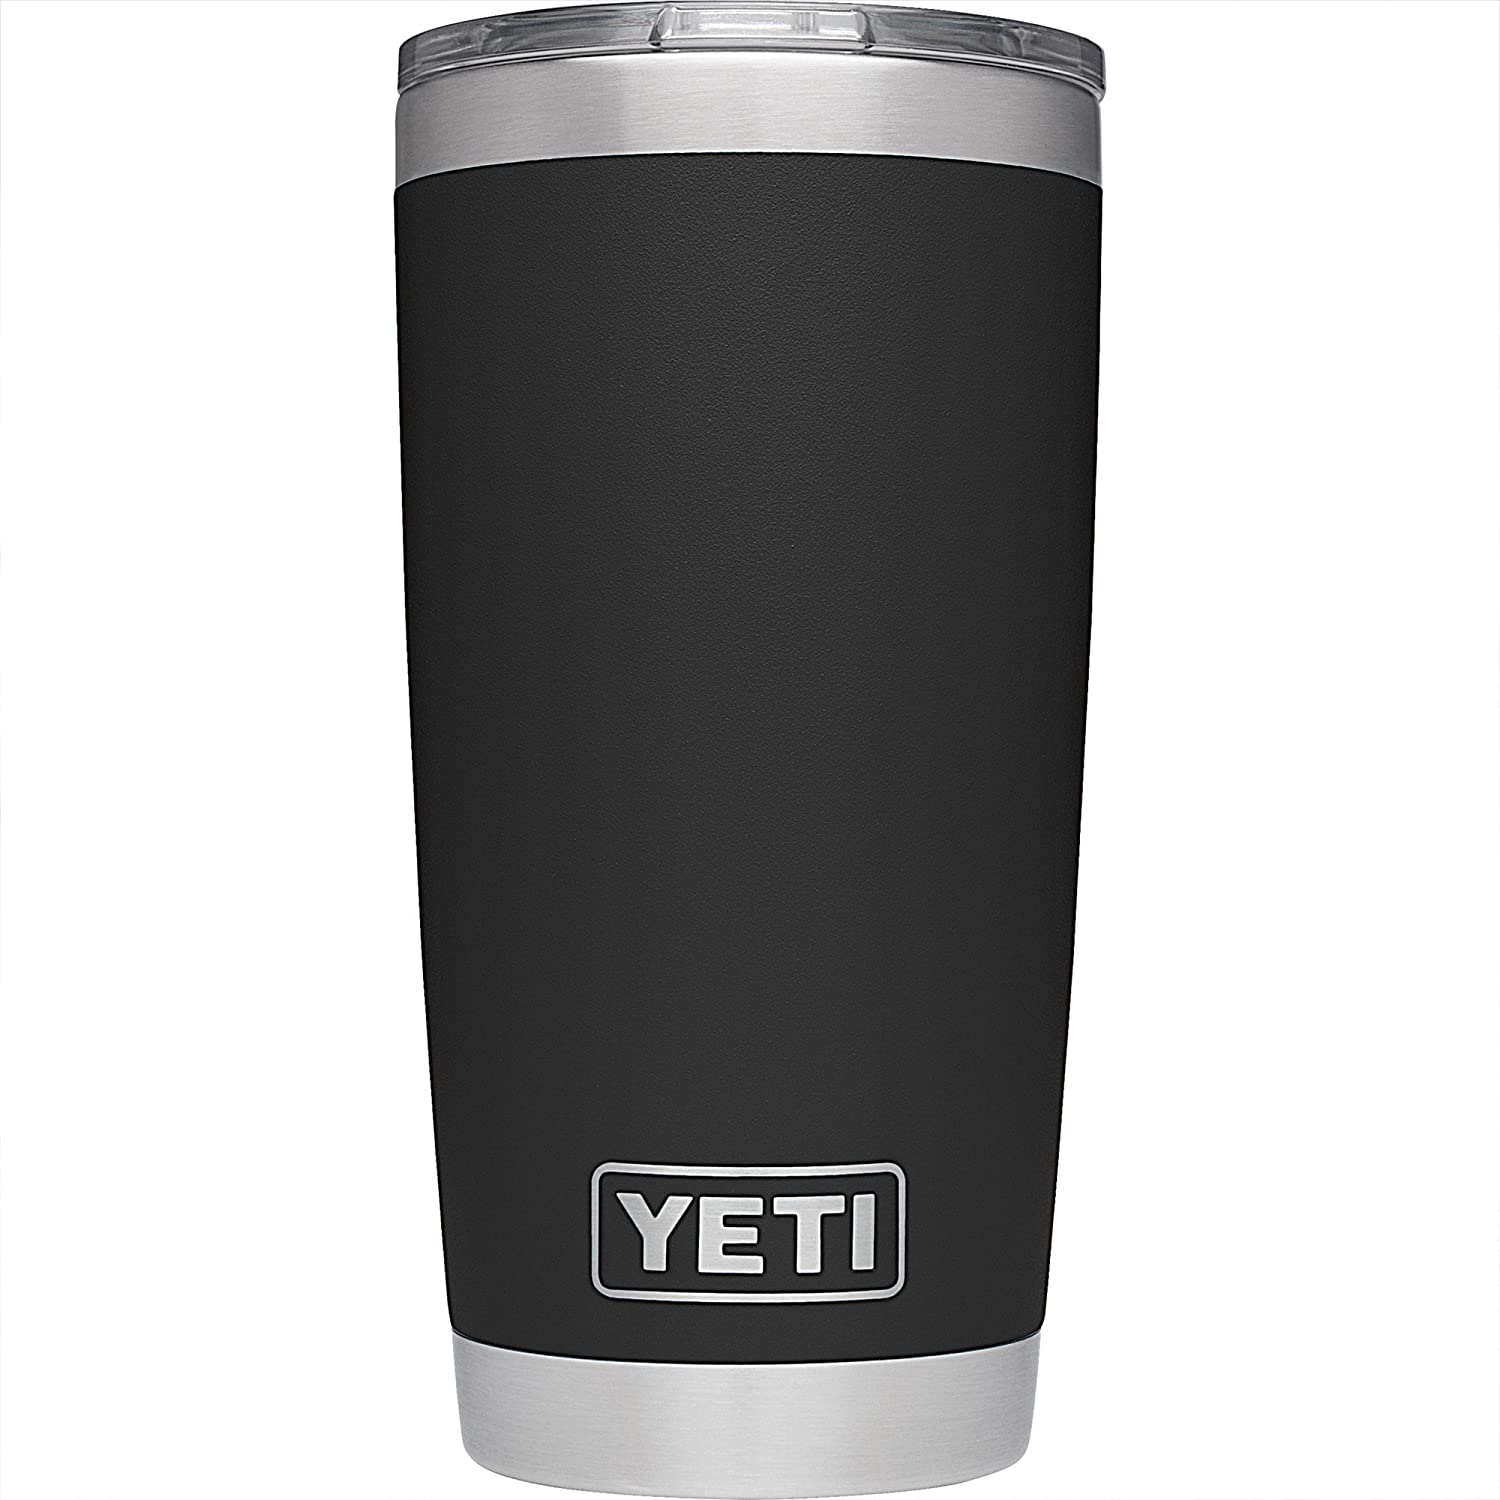 Yeti Cup Prices >> Yeti Rambler Vacuum Insulated Tumbler With Lid